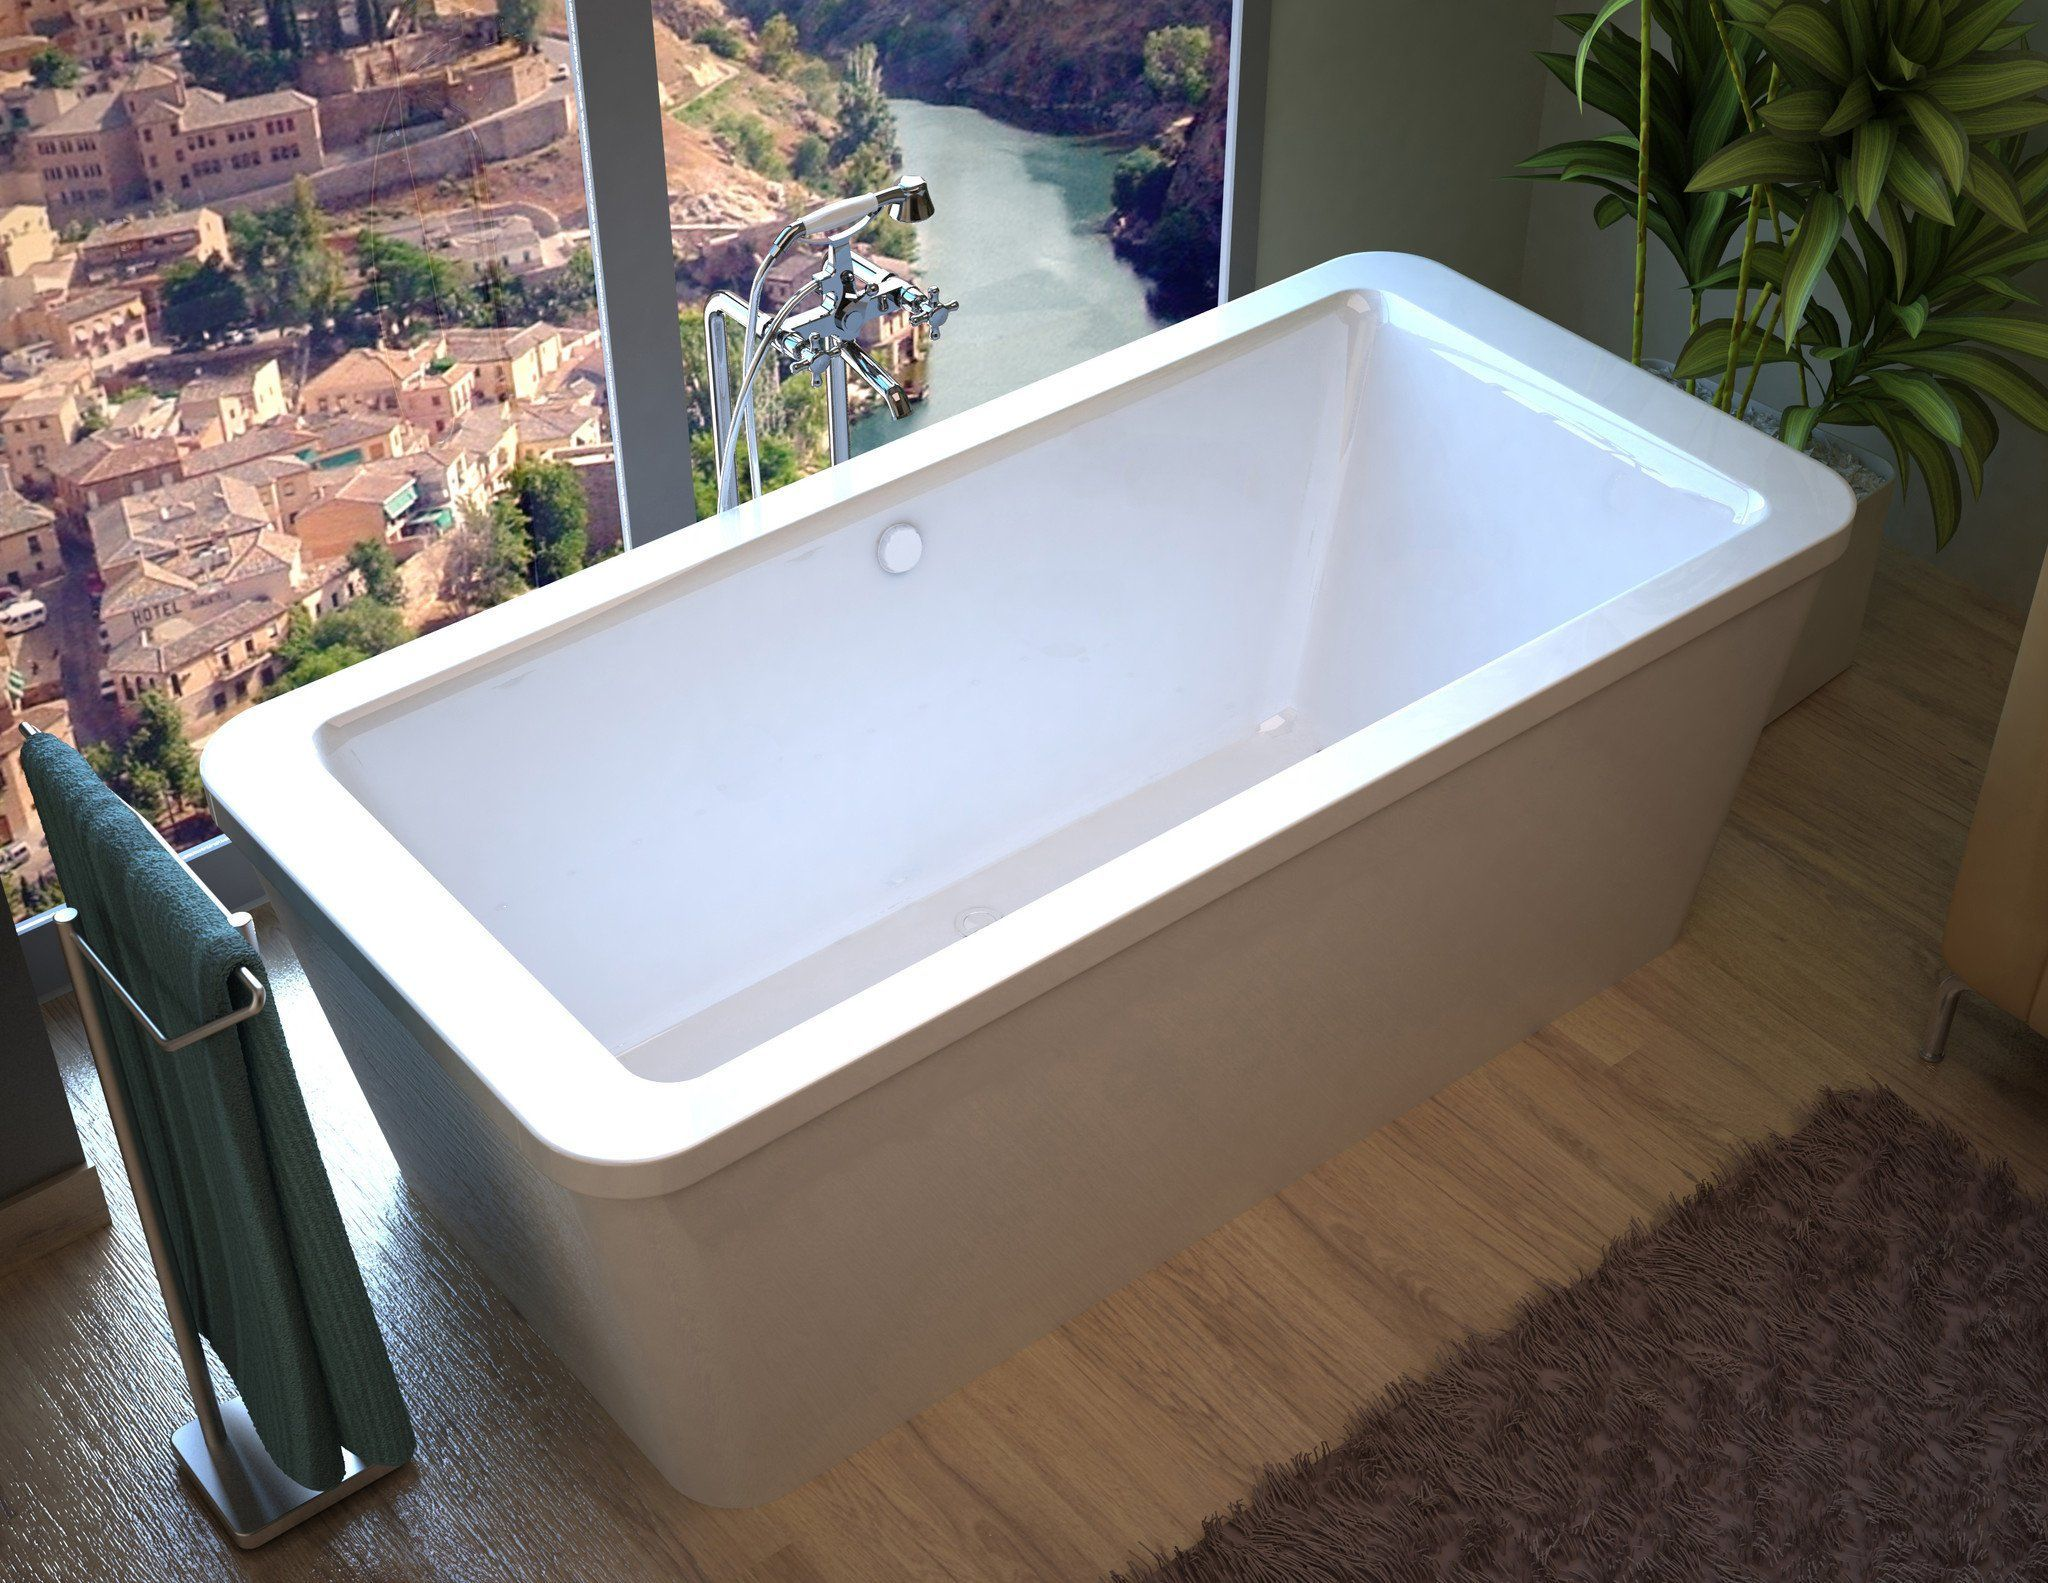 Atlantis Whirlpools 3267AS Aquarius 34 x 67 Rectangular Freestanding ...